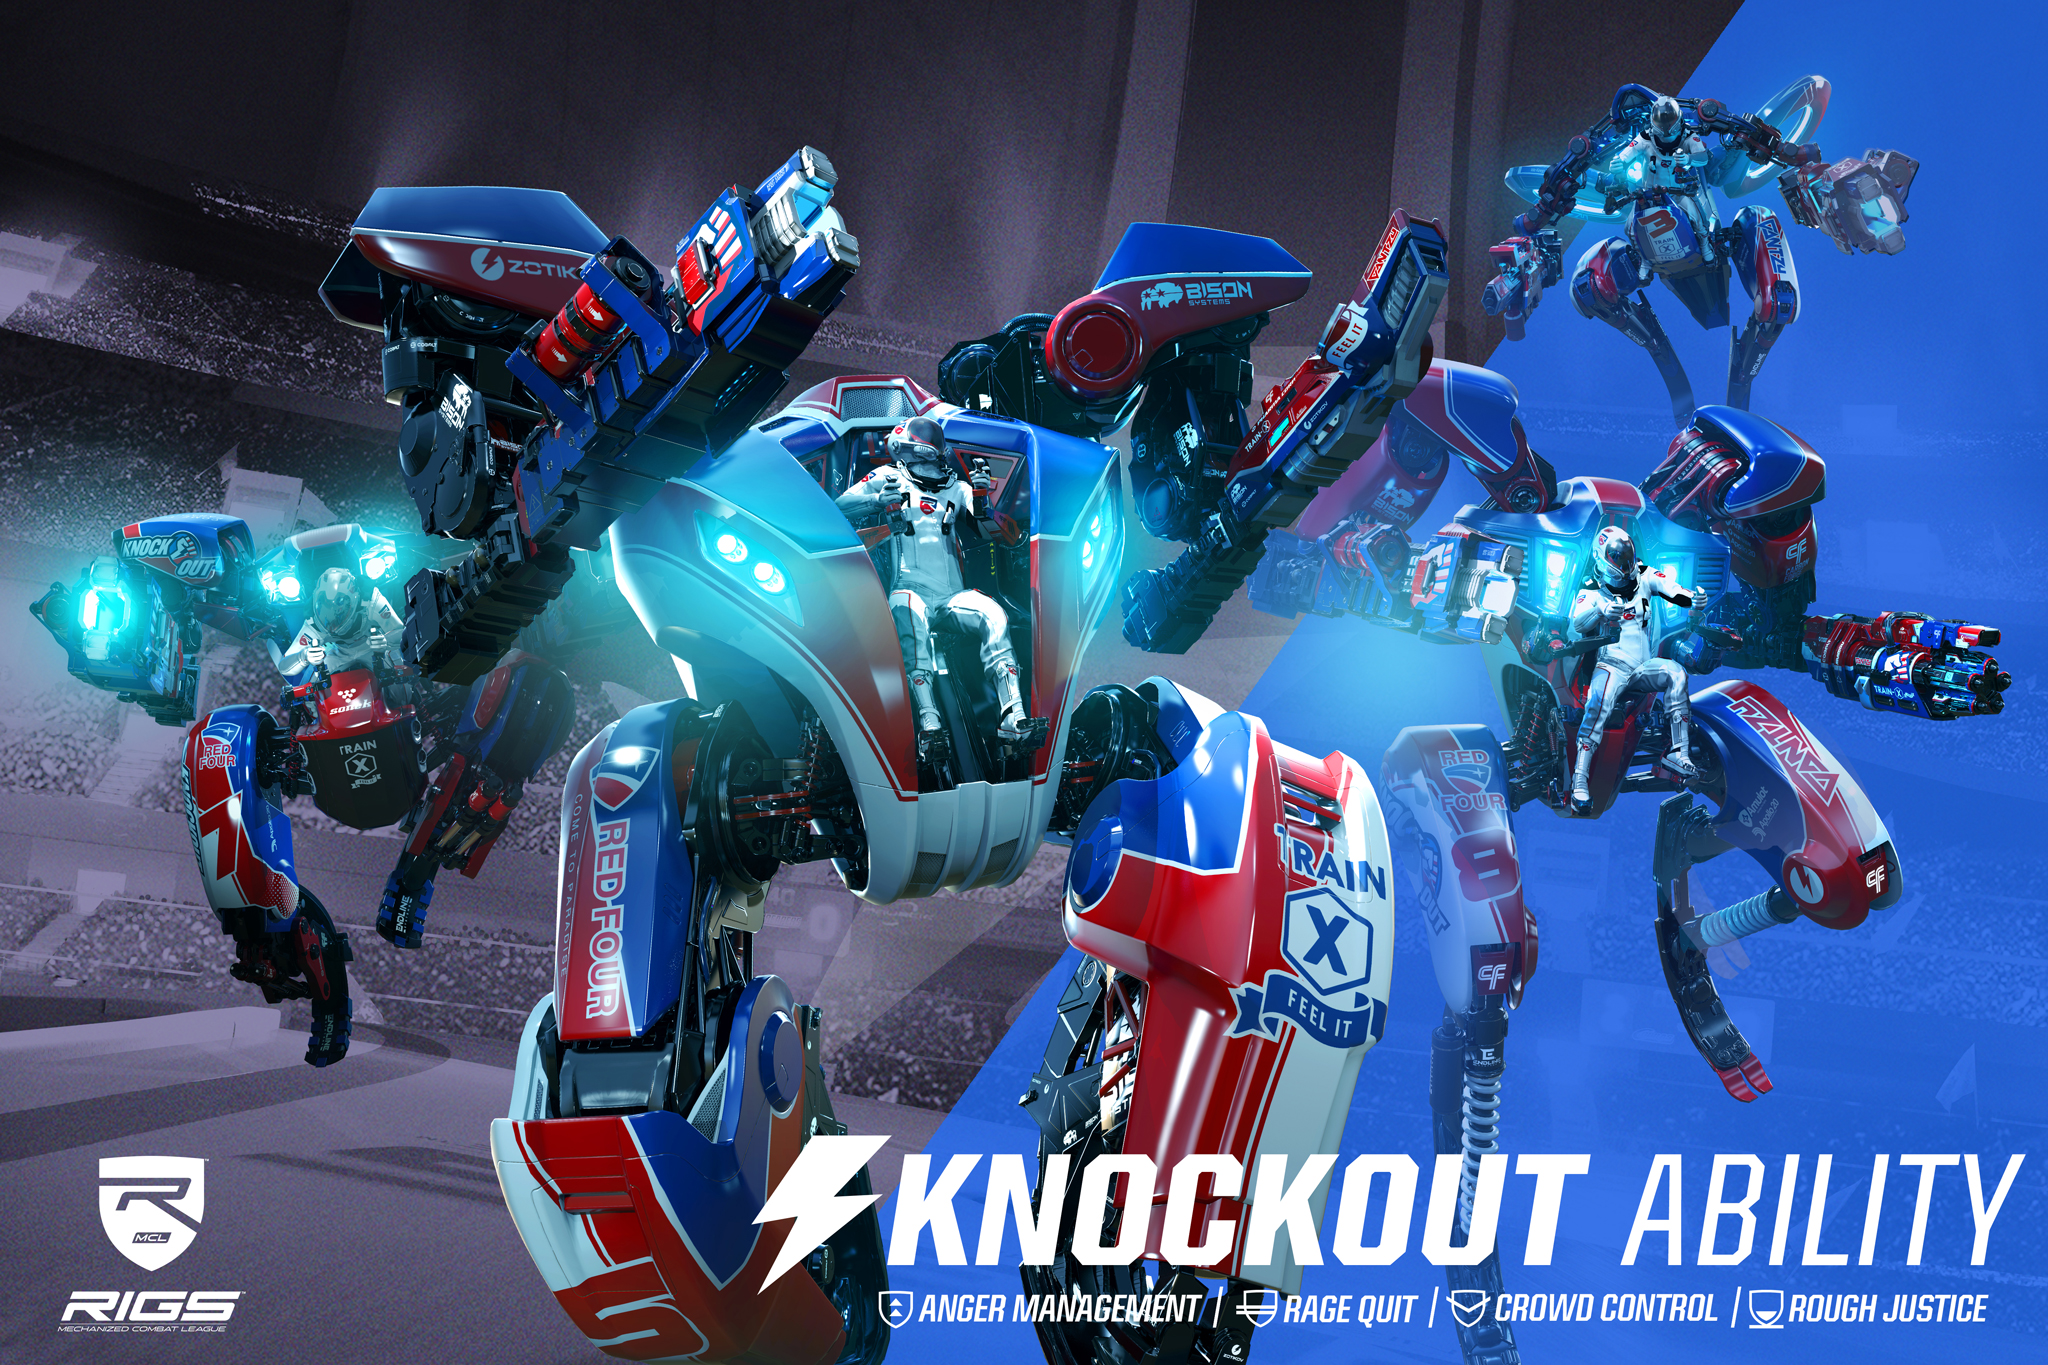 Ability_Group_Knockout_No_Weapon_Details_small.jpg